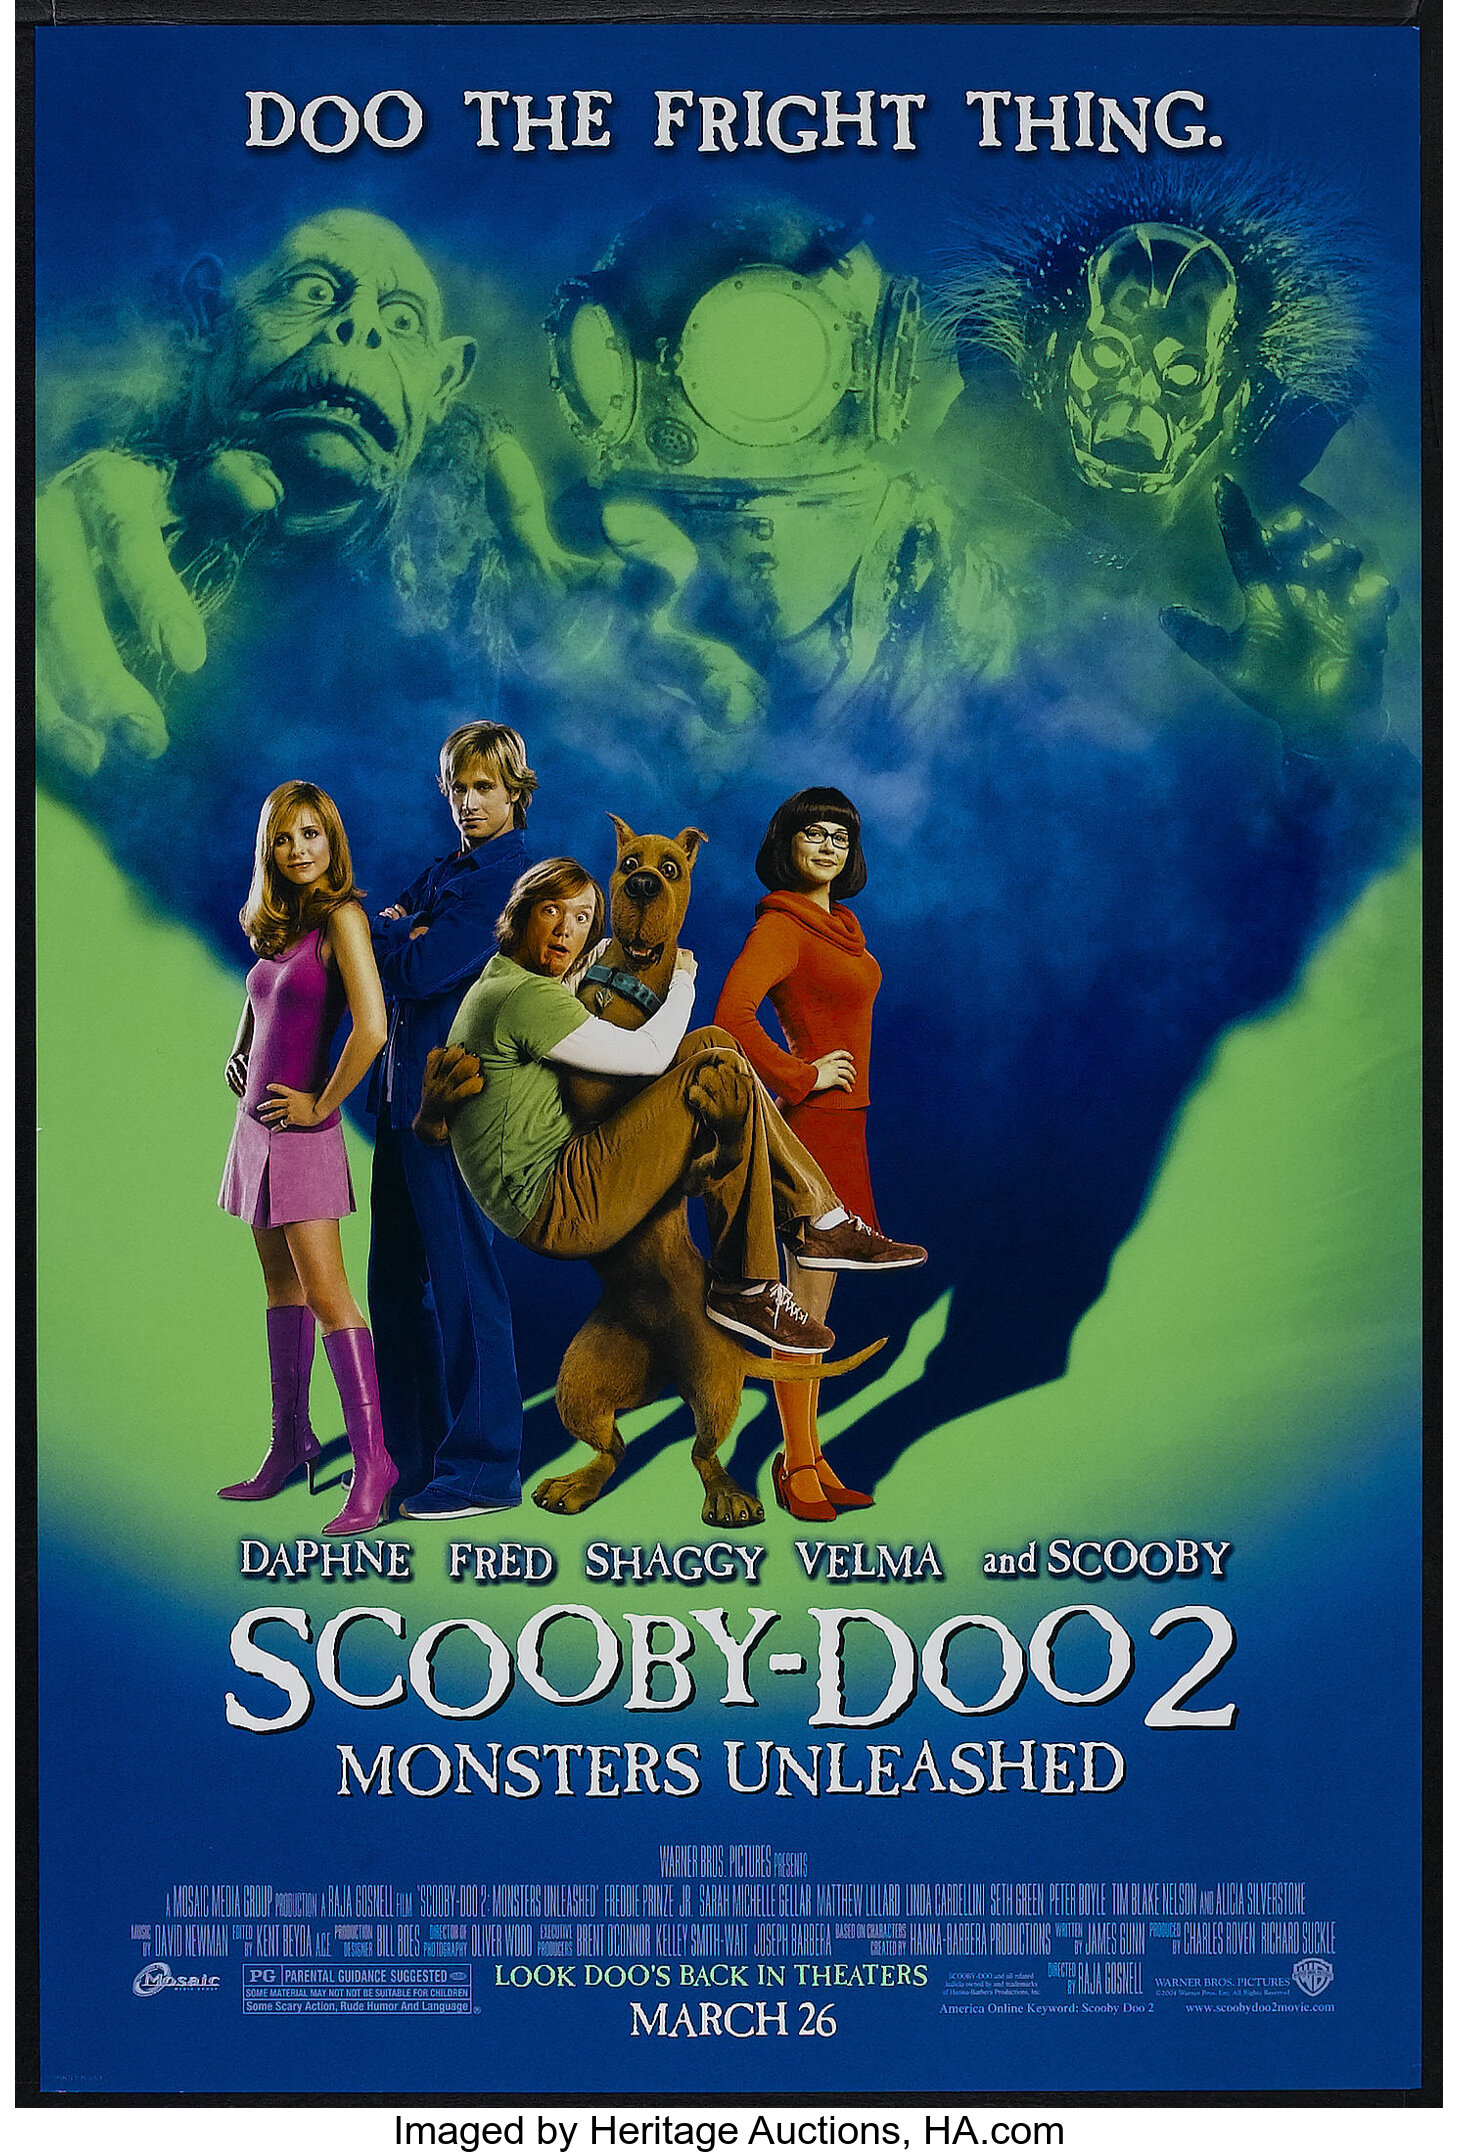 Scooby Doo 2 Monsters Unleashed Warner Brothers 2004 One Lot 26218 Heritage Auctions